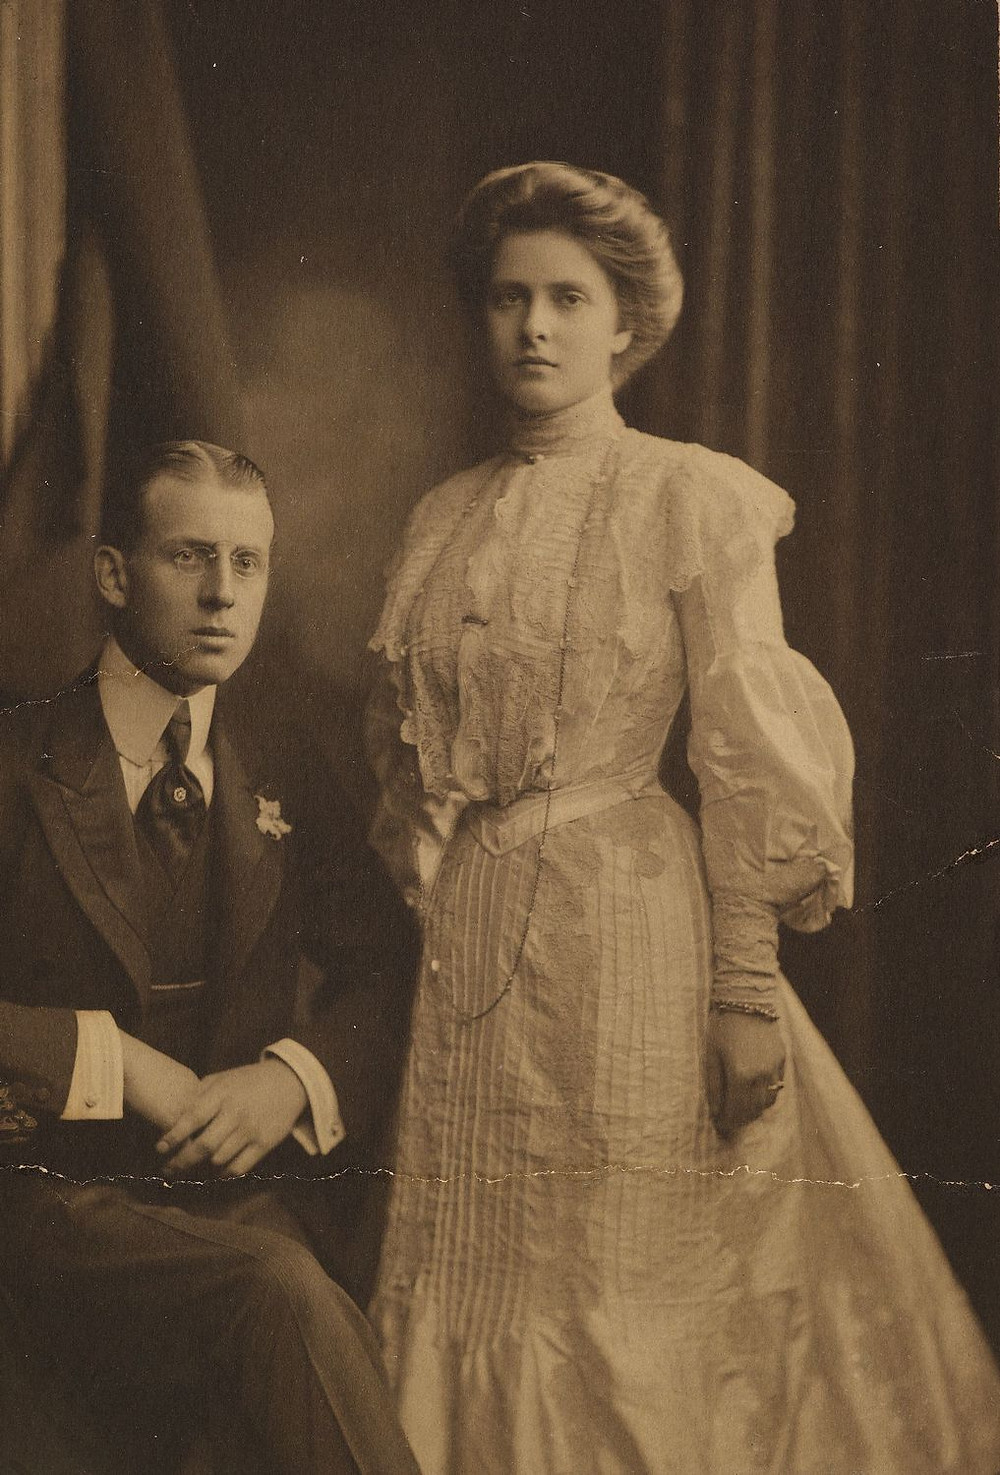 Prince Andrew of Greece and Denmark (1882-1944) and Princess Alice of Battenberg (1885-1969) 1903 . They are the parents of Prince Philip, Duke of Edinburgh & in-laws of Her Majesty the Queen